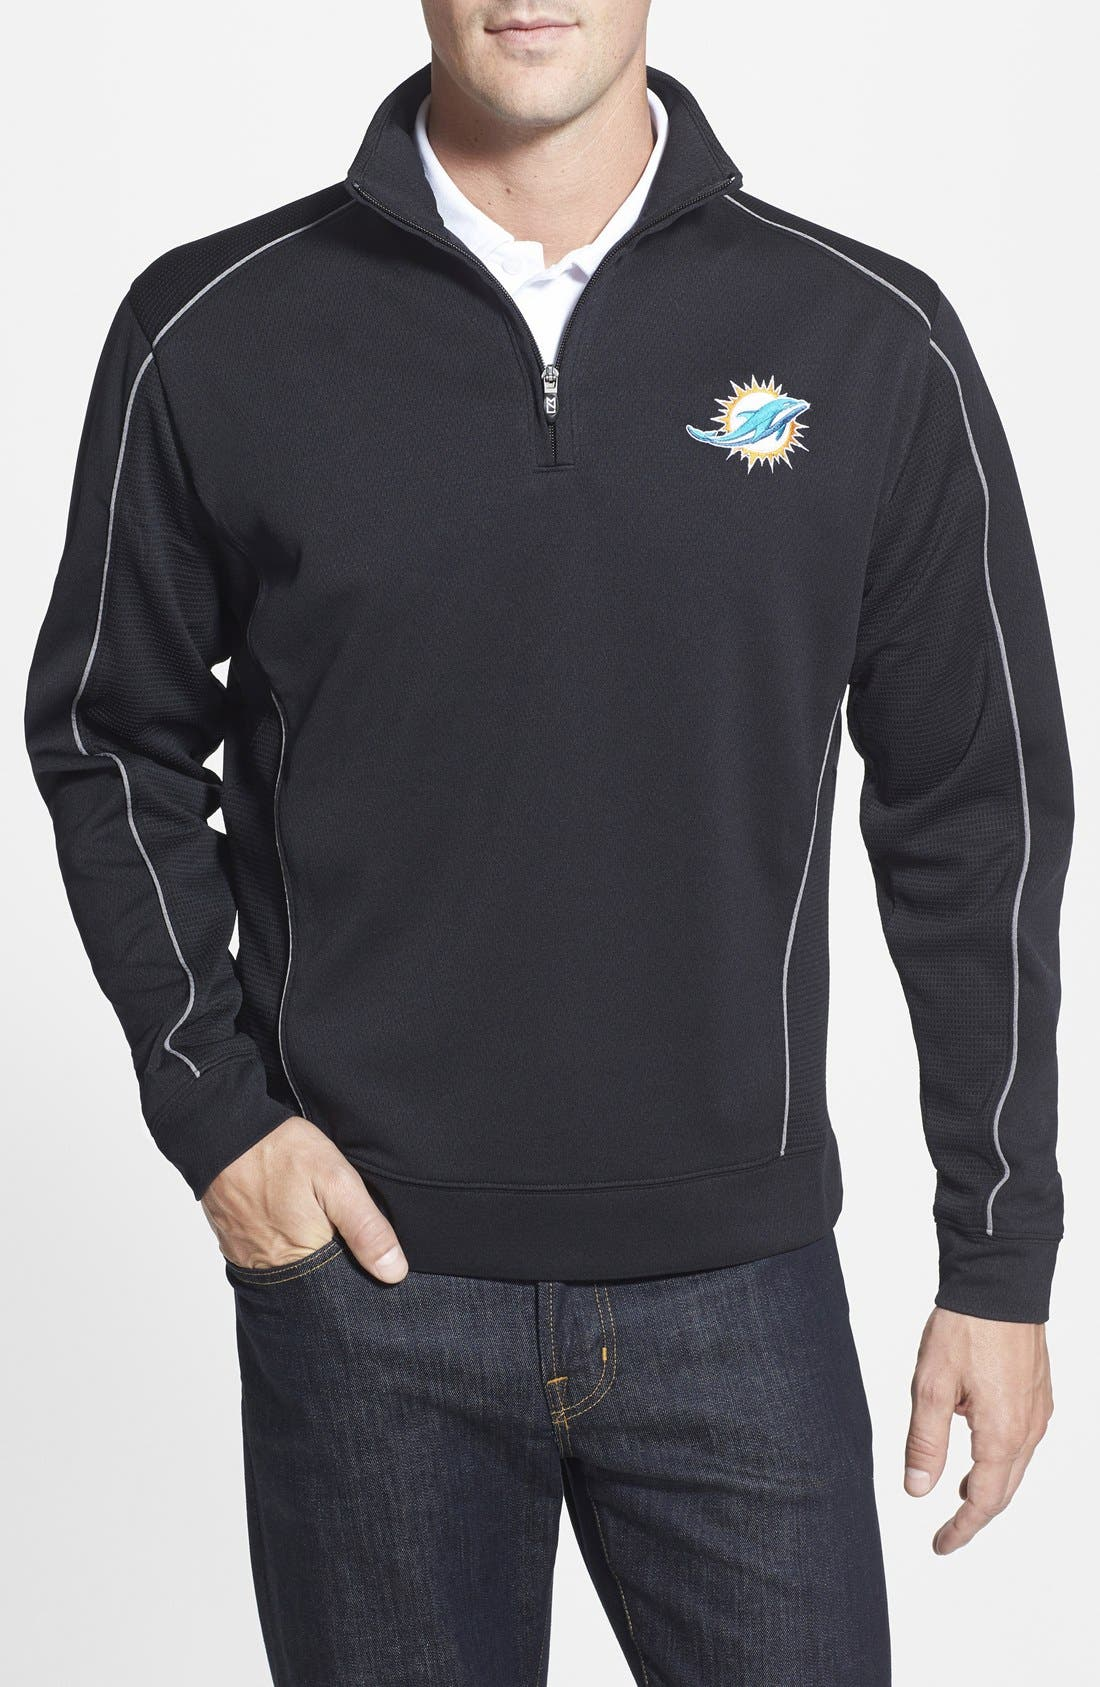 Cutter & Buck Miami Dolphins - Edge DryTec Moisture Wicking Half Zip Pullover